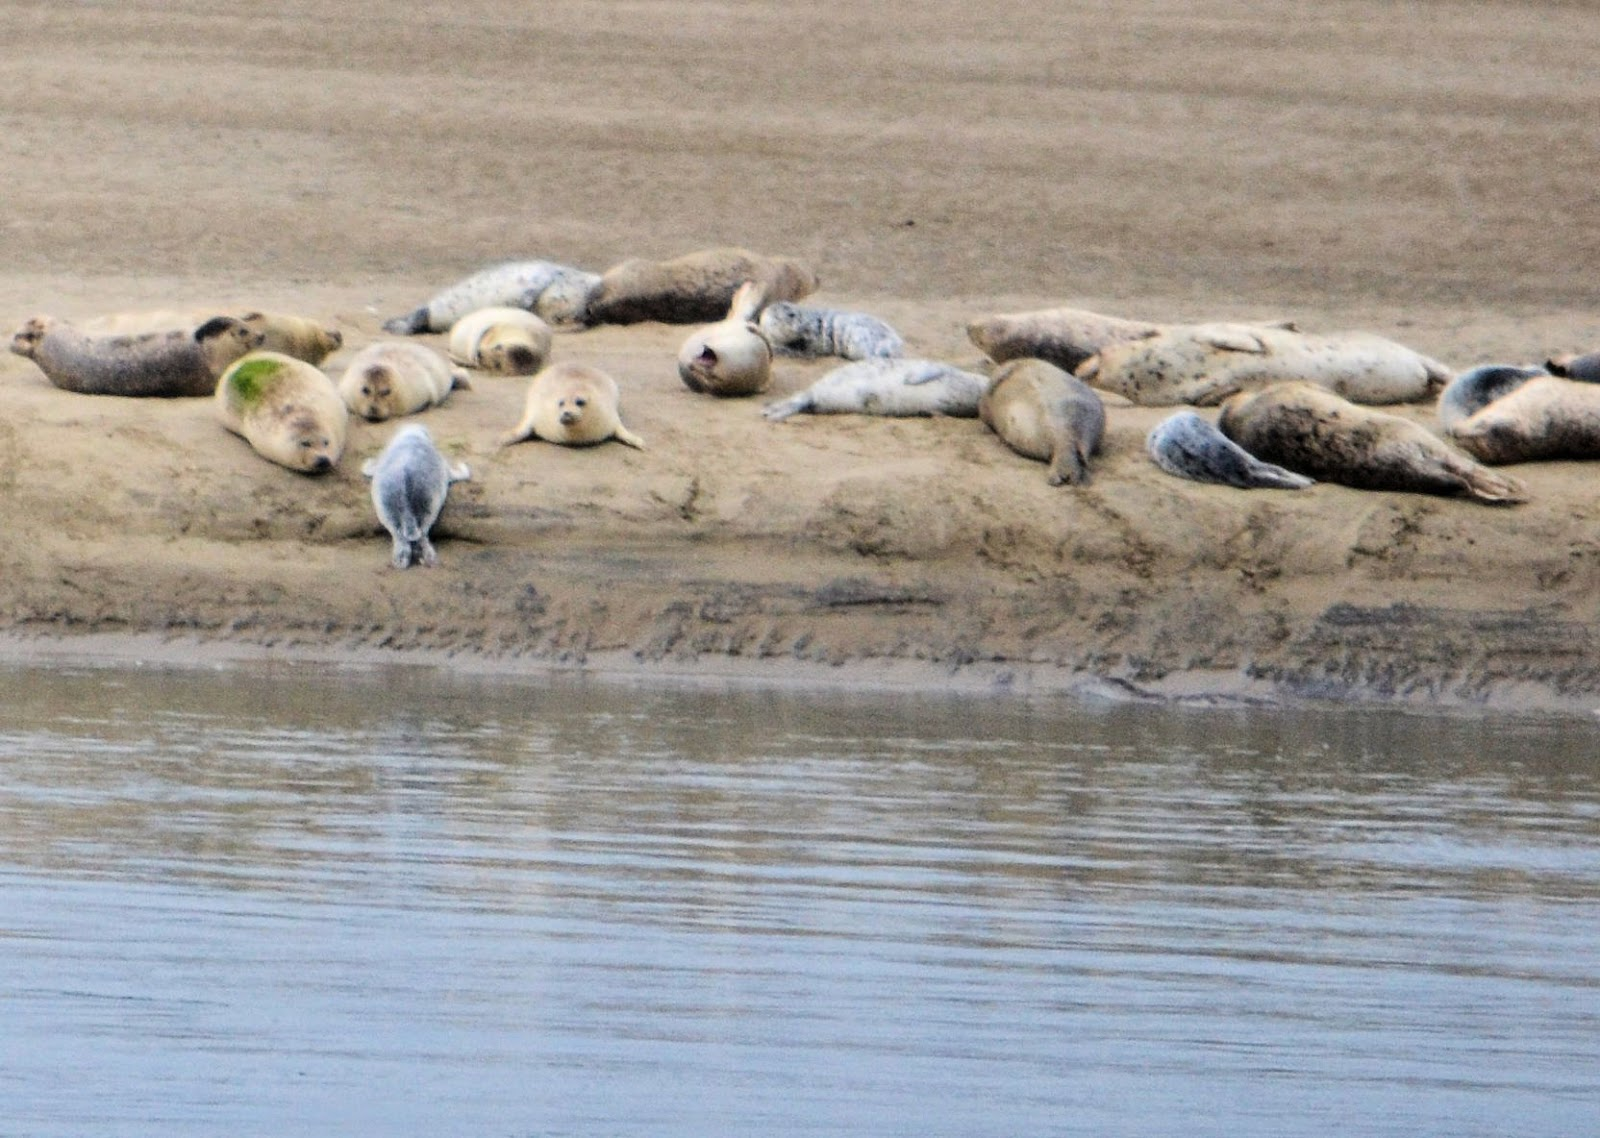 photo of seals at Netarts Oregon by Nancy Zavada